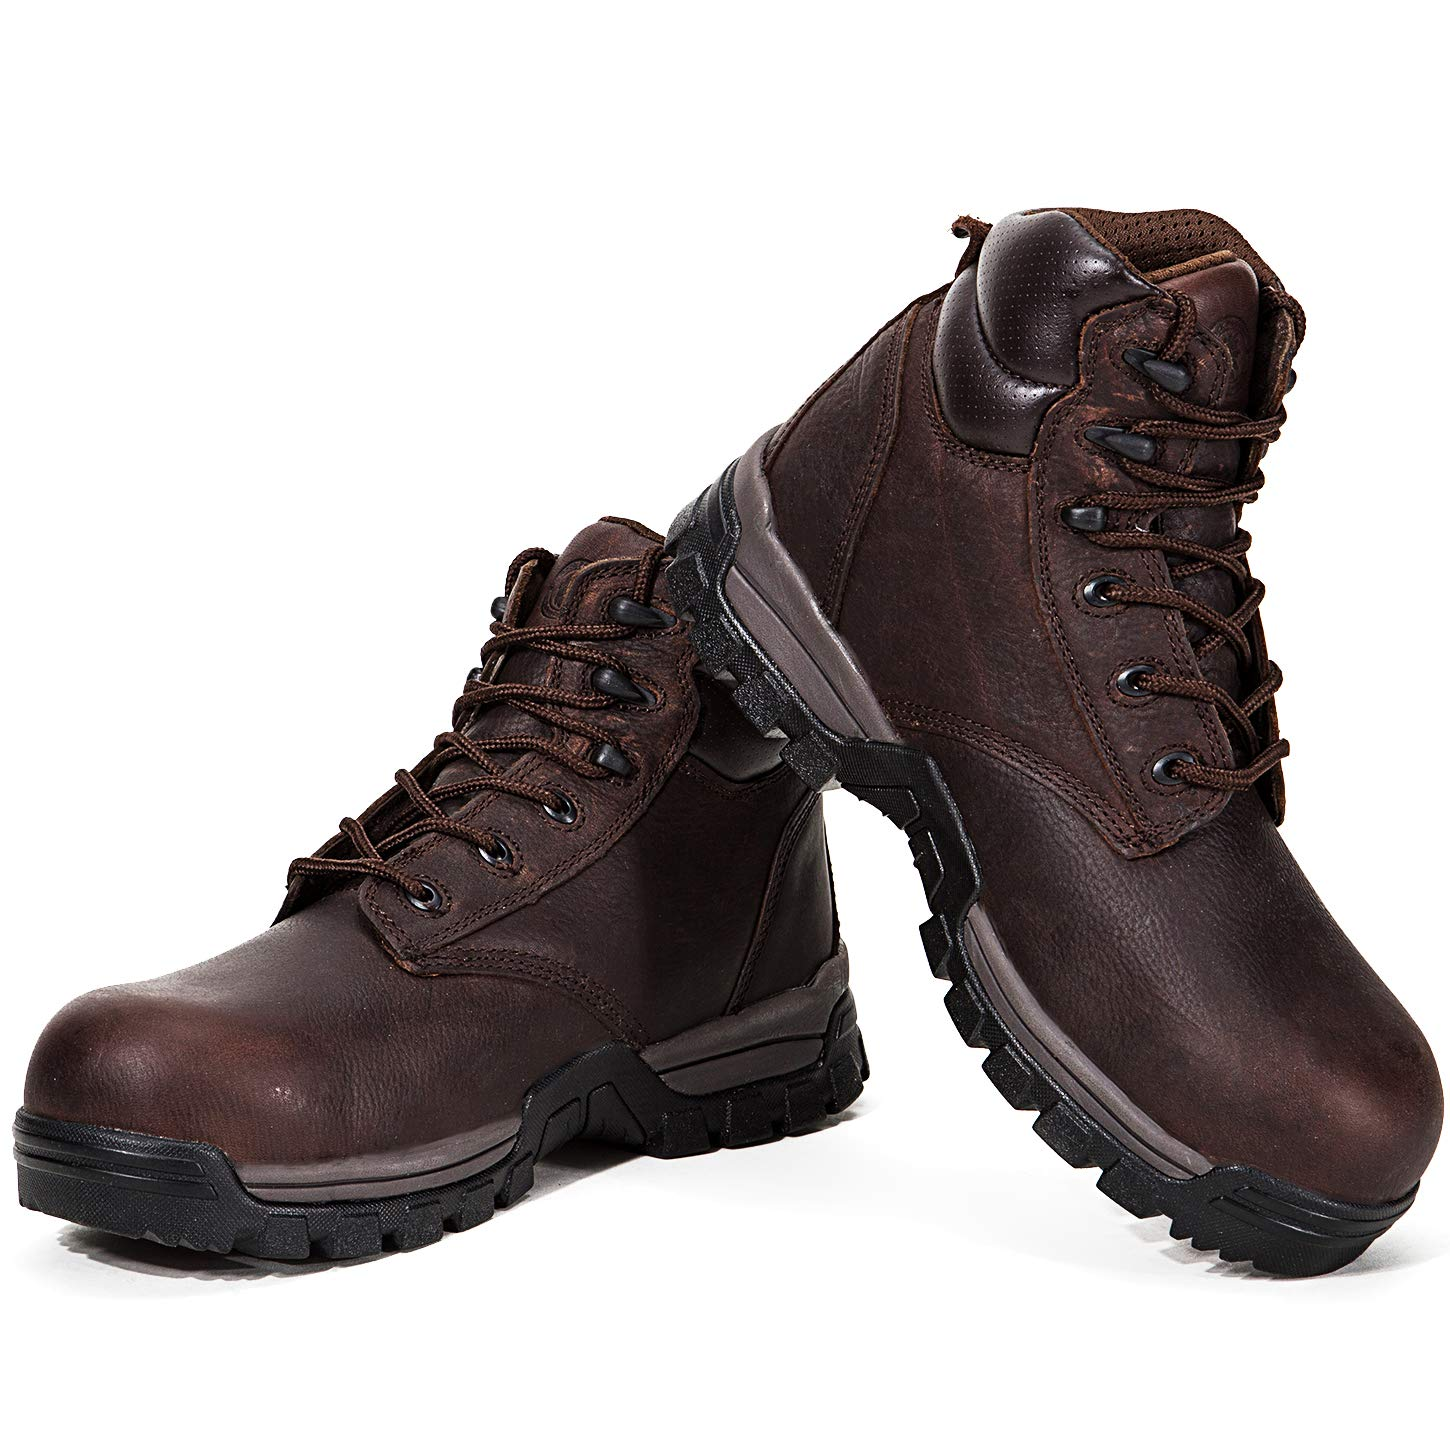 ROCKROOSTER Mens Work Boots, Waterproof Non-Slip Safety Shoes, ASTM F2413, Kevlar, Coolmax, Poron XRD, Anti-Fatigue